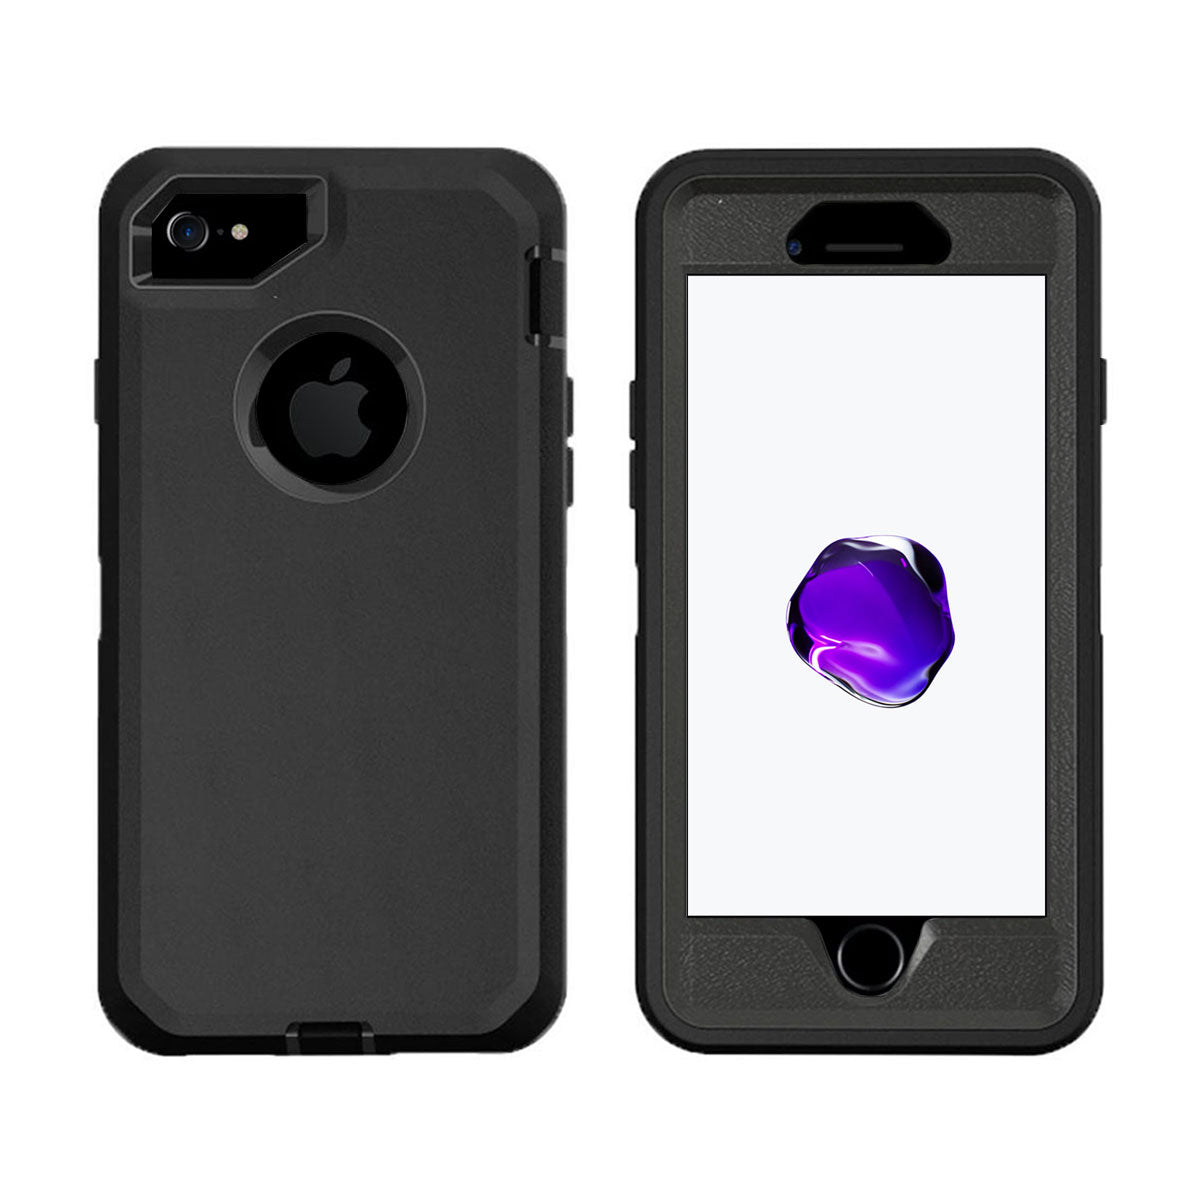 iPhone 7 protective cases Heavy Duty Military Grade Armor Case Cover by  TradeNRG